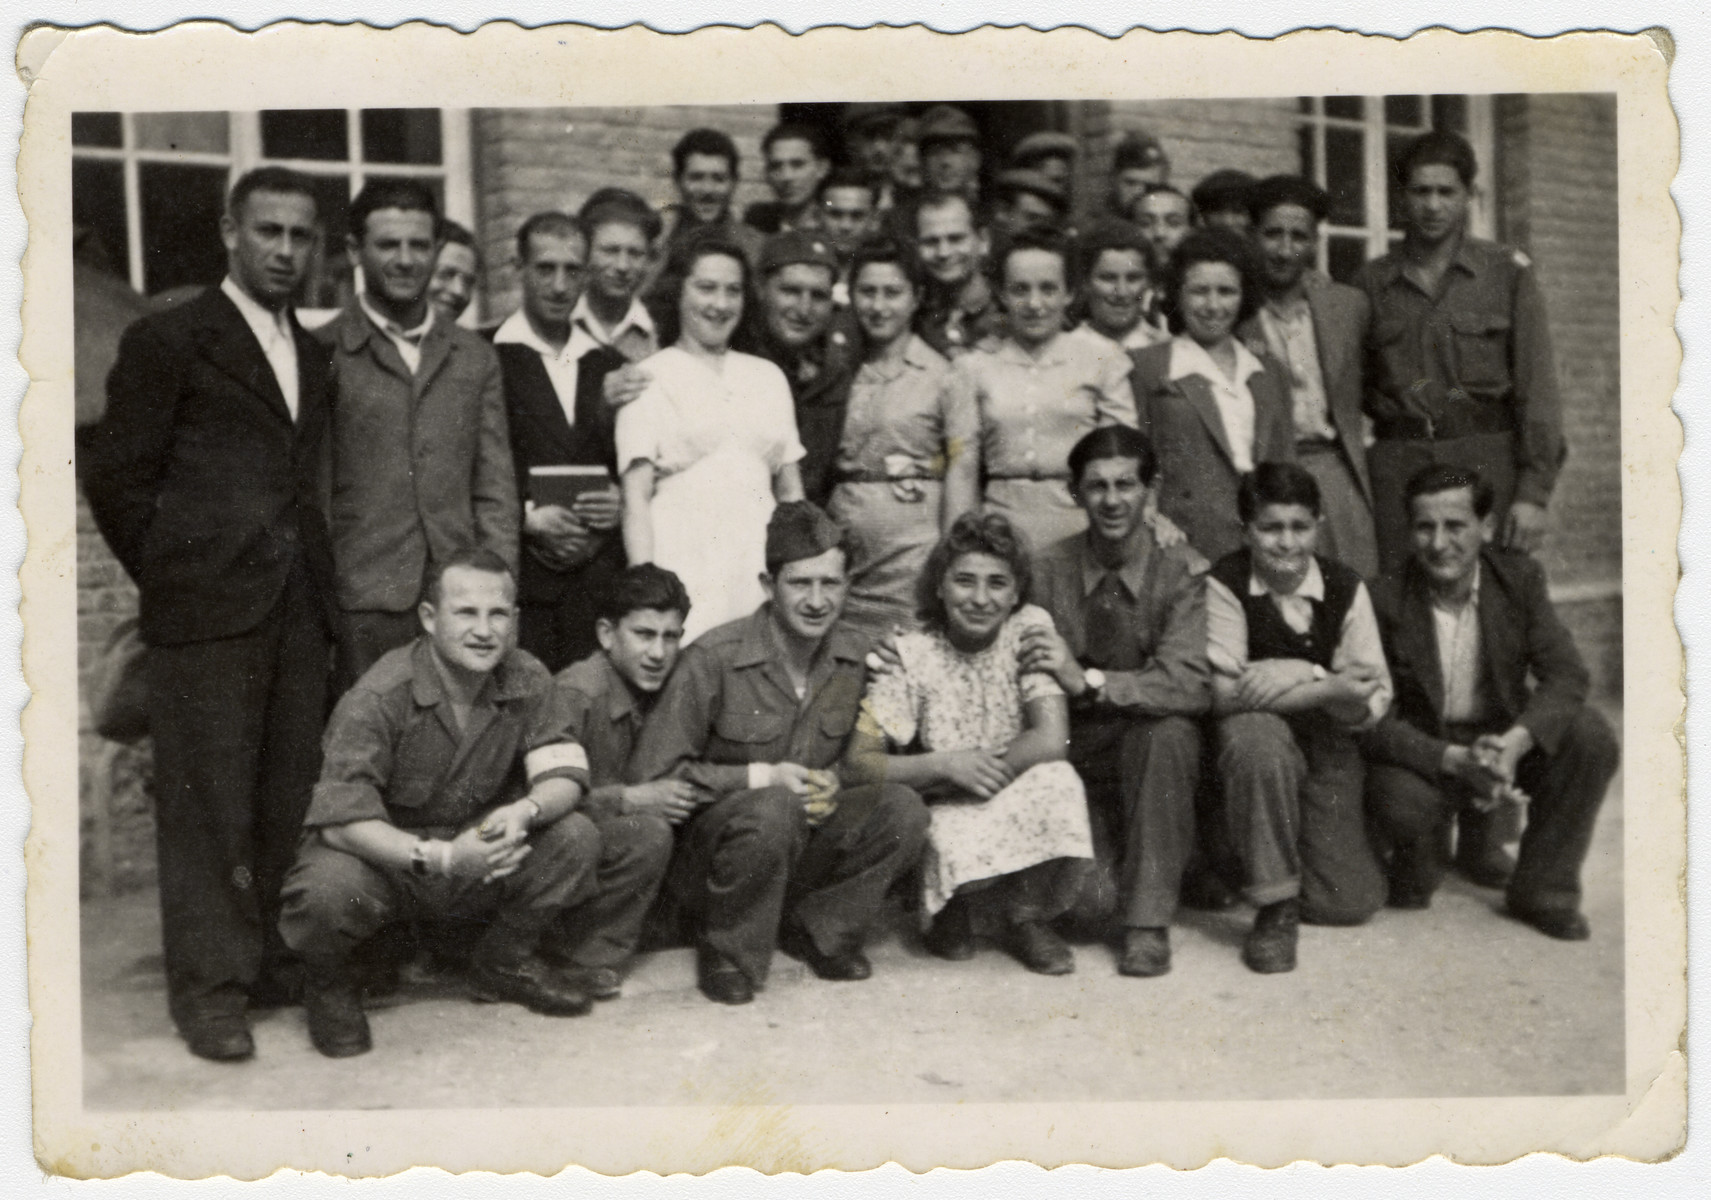 Group portrait of Jewish DPs and American Jewish soldiers at a displaced persons camp in Salzburg.  Among those pictured is Hadasa Werdygier (second row from the front, wearing a white dress).